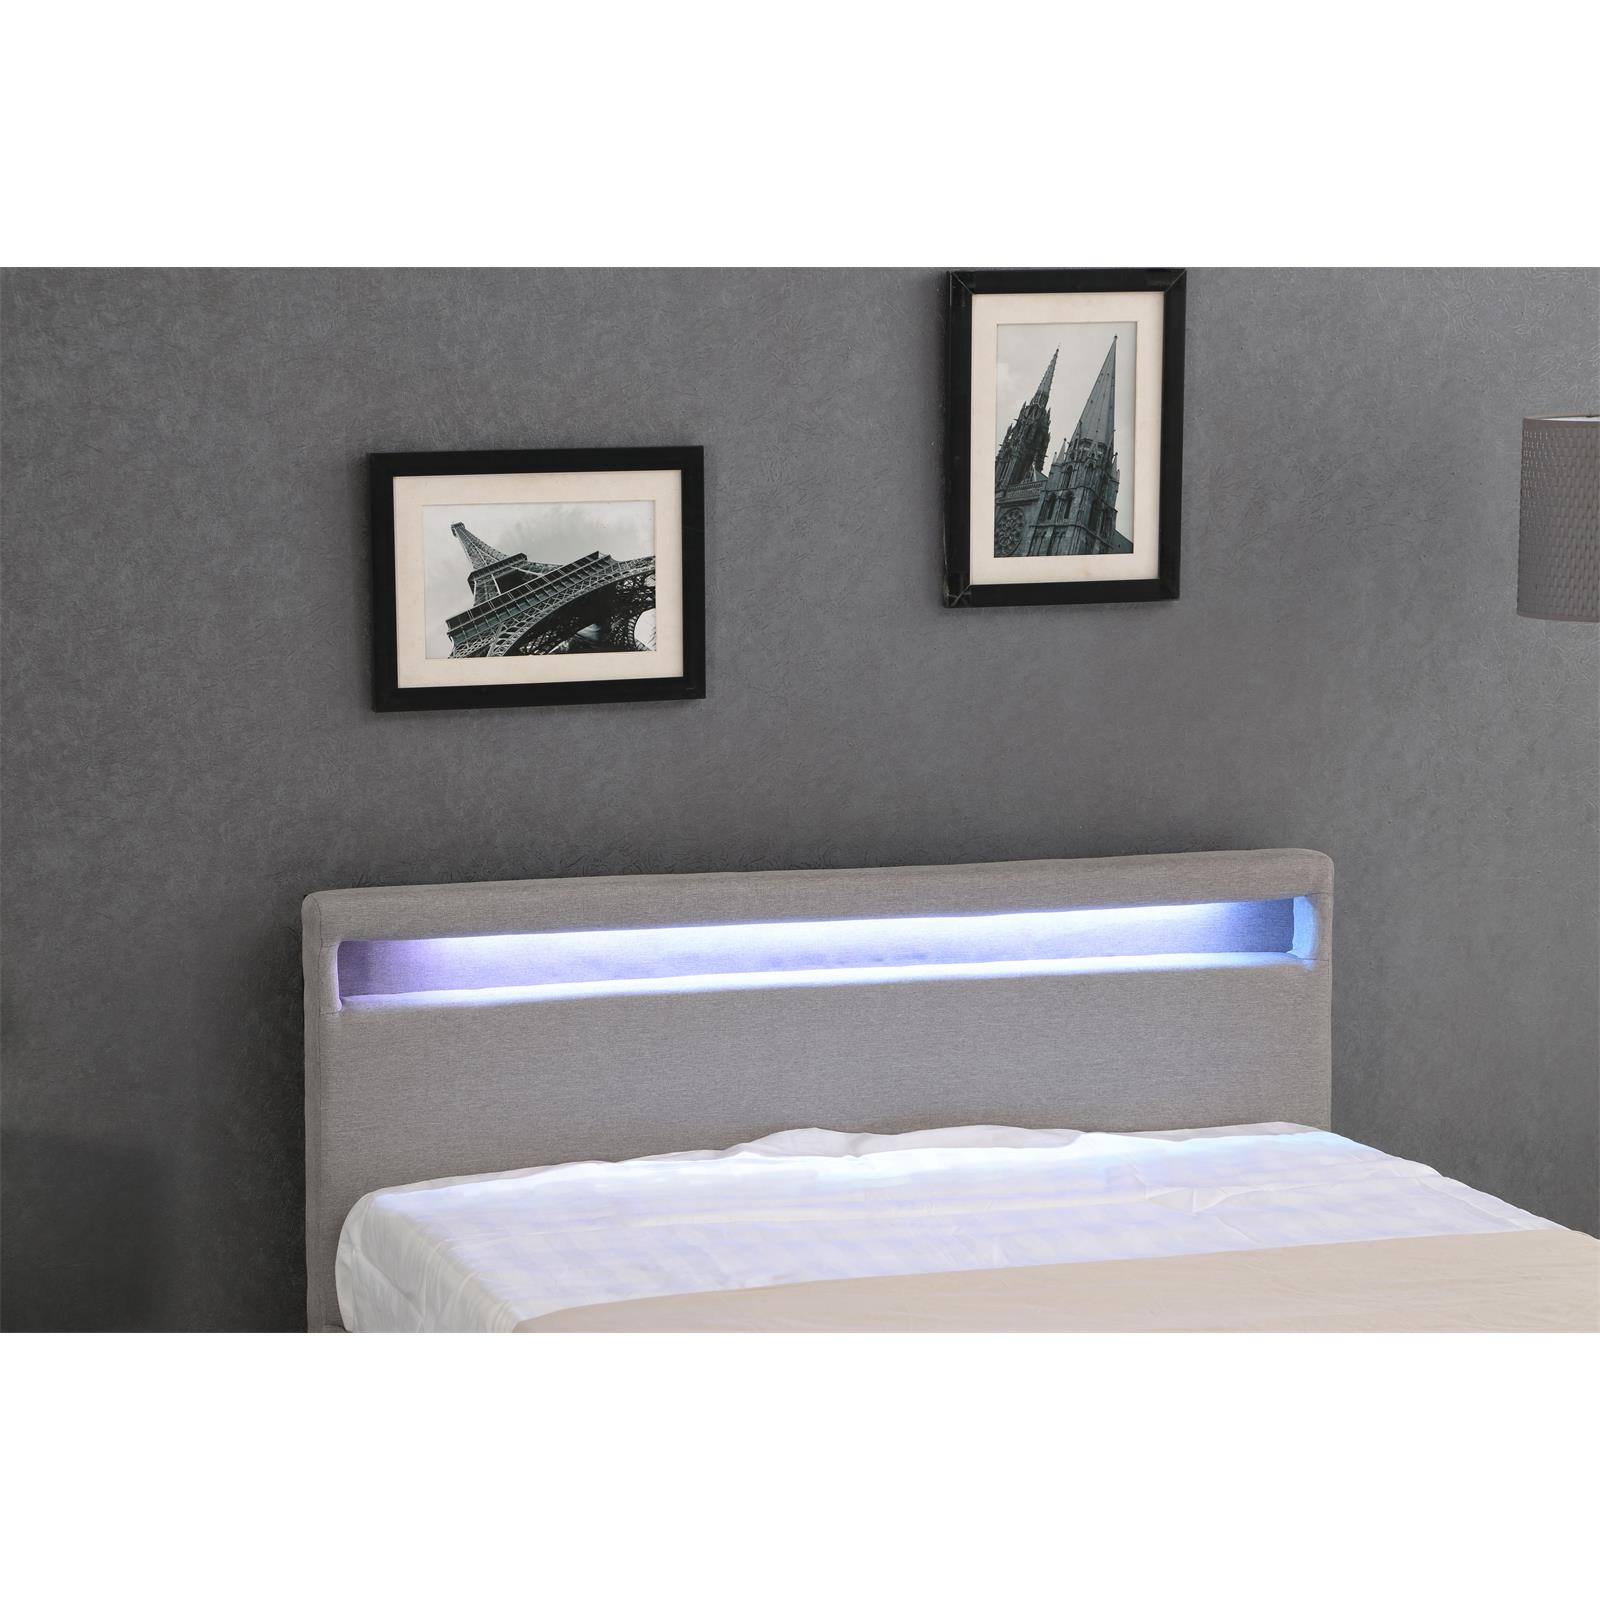 polsterbett einzelbett doppelbett jugendbett mit led 120 x 200 cm stoffbezug ebay. Black Bedroom Furniture Sets. Home Design Ideas